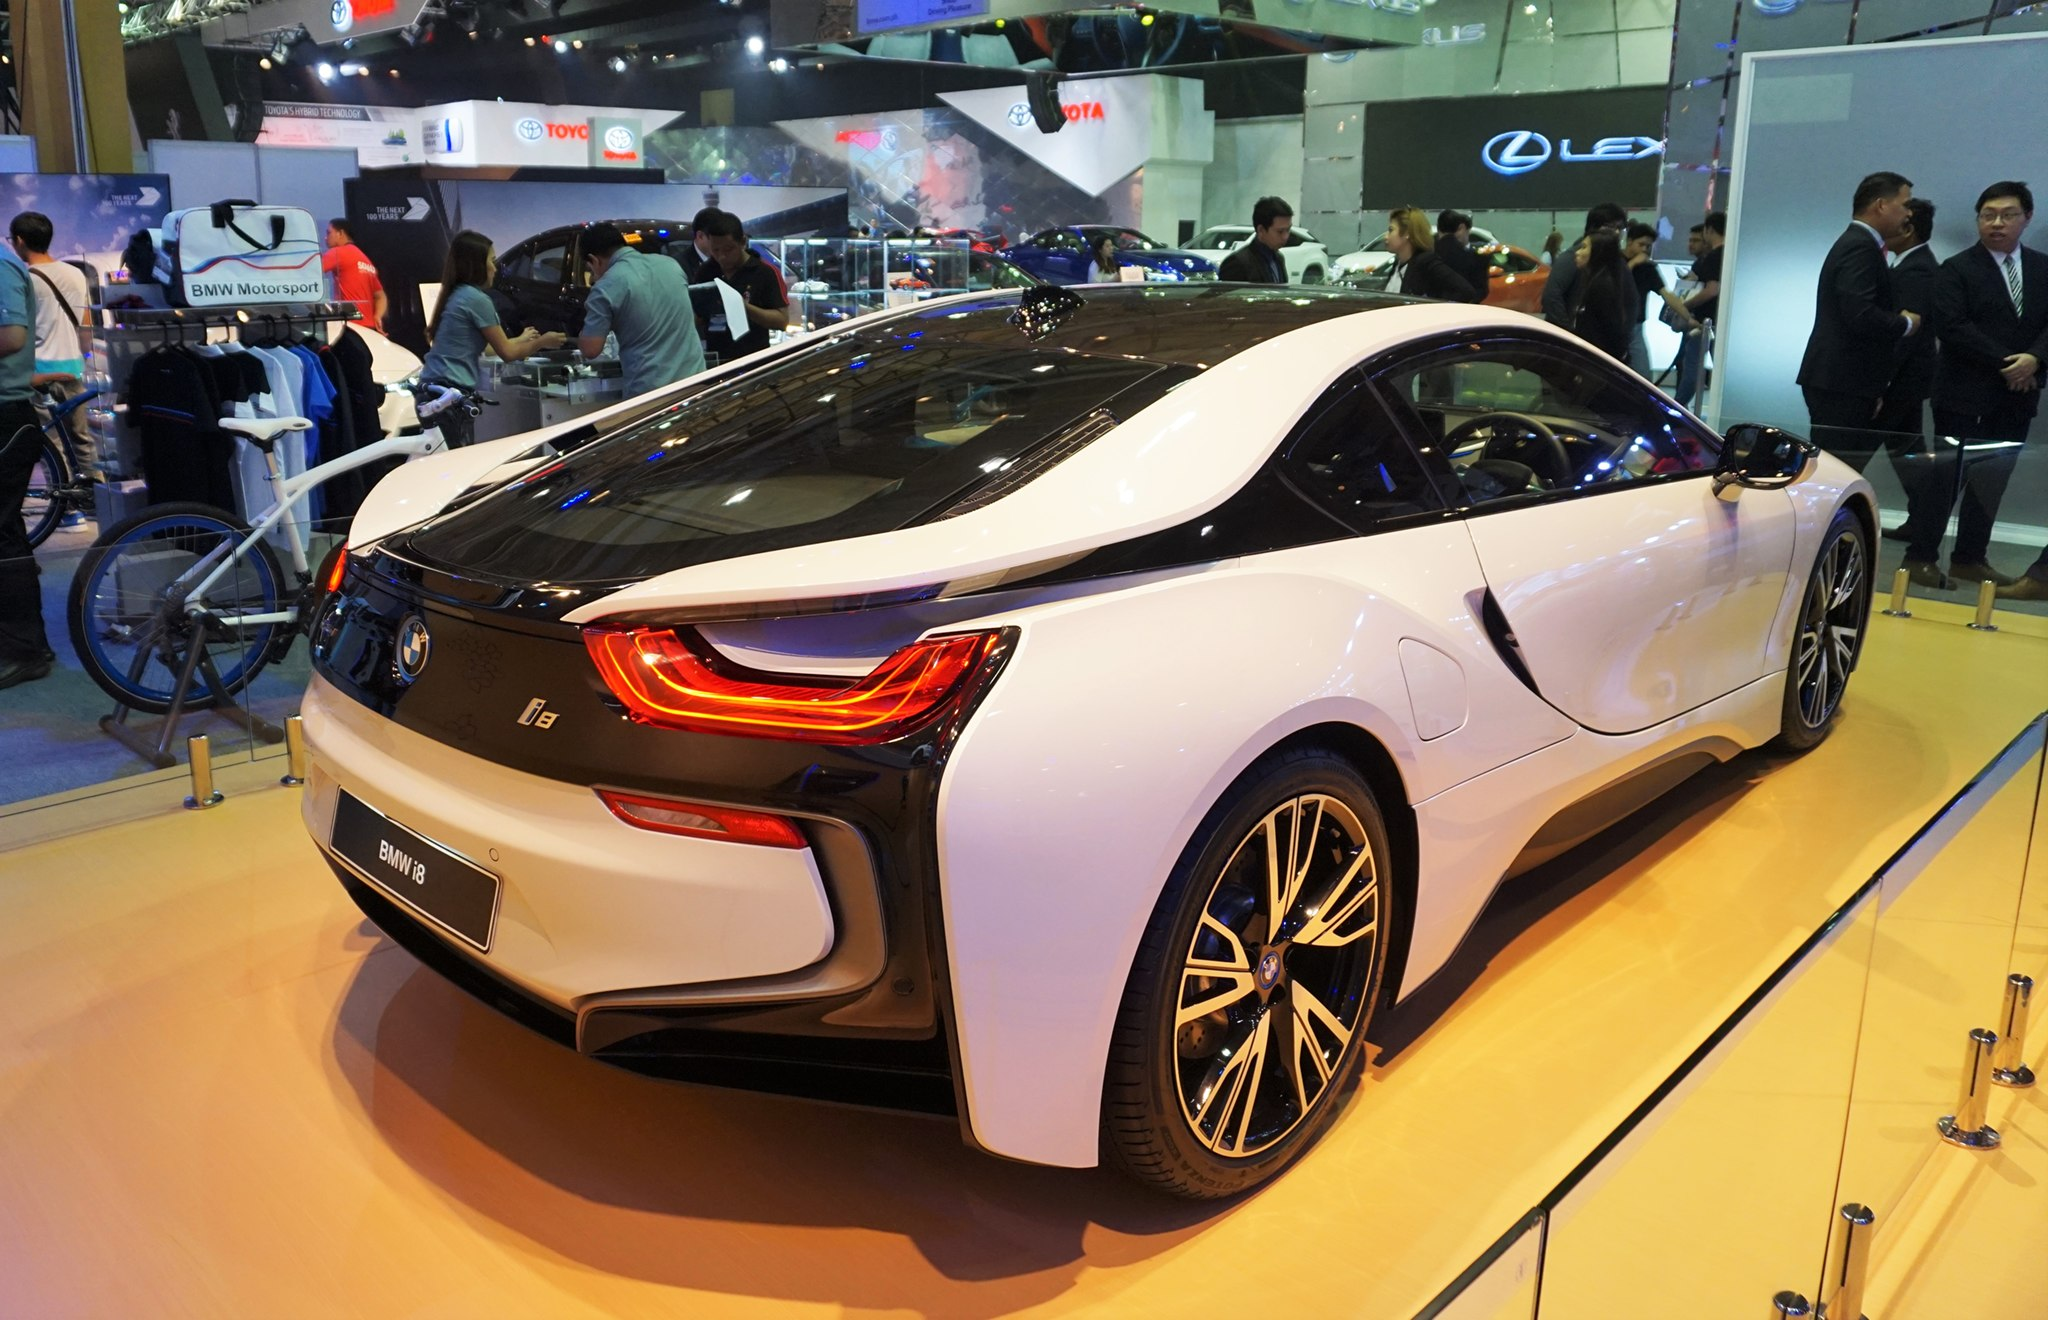 Captivating Bmw I8 At Philippine International Motor Show 1